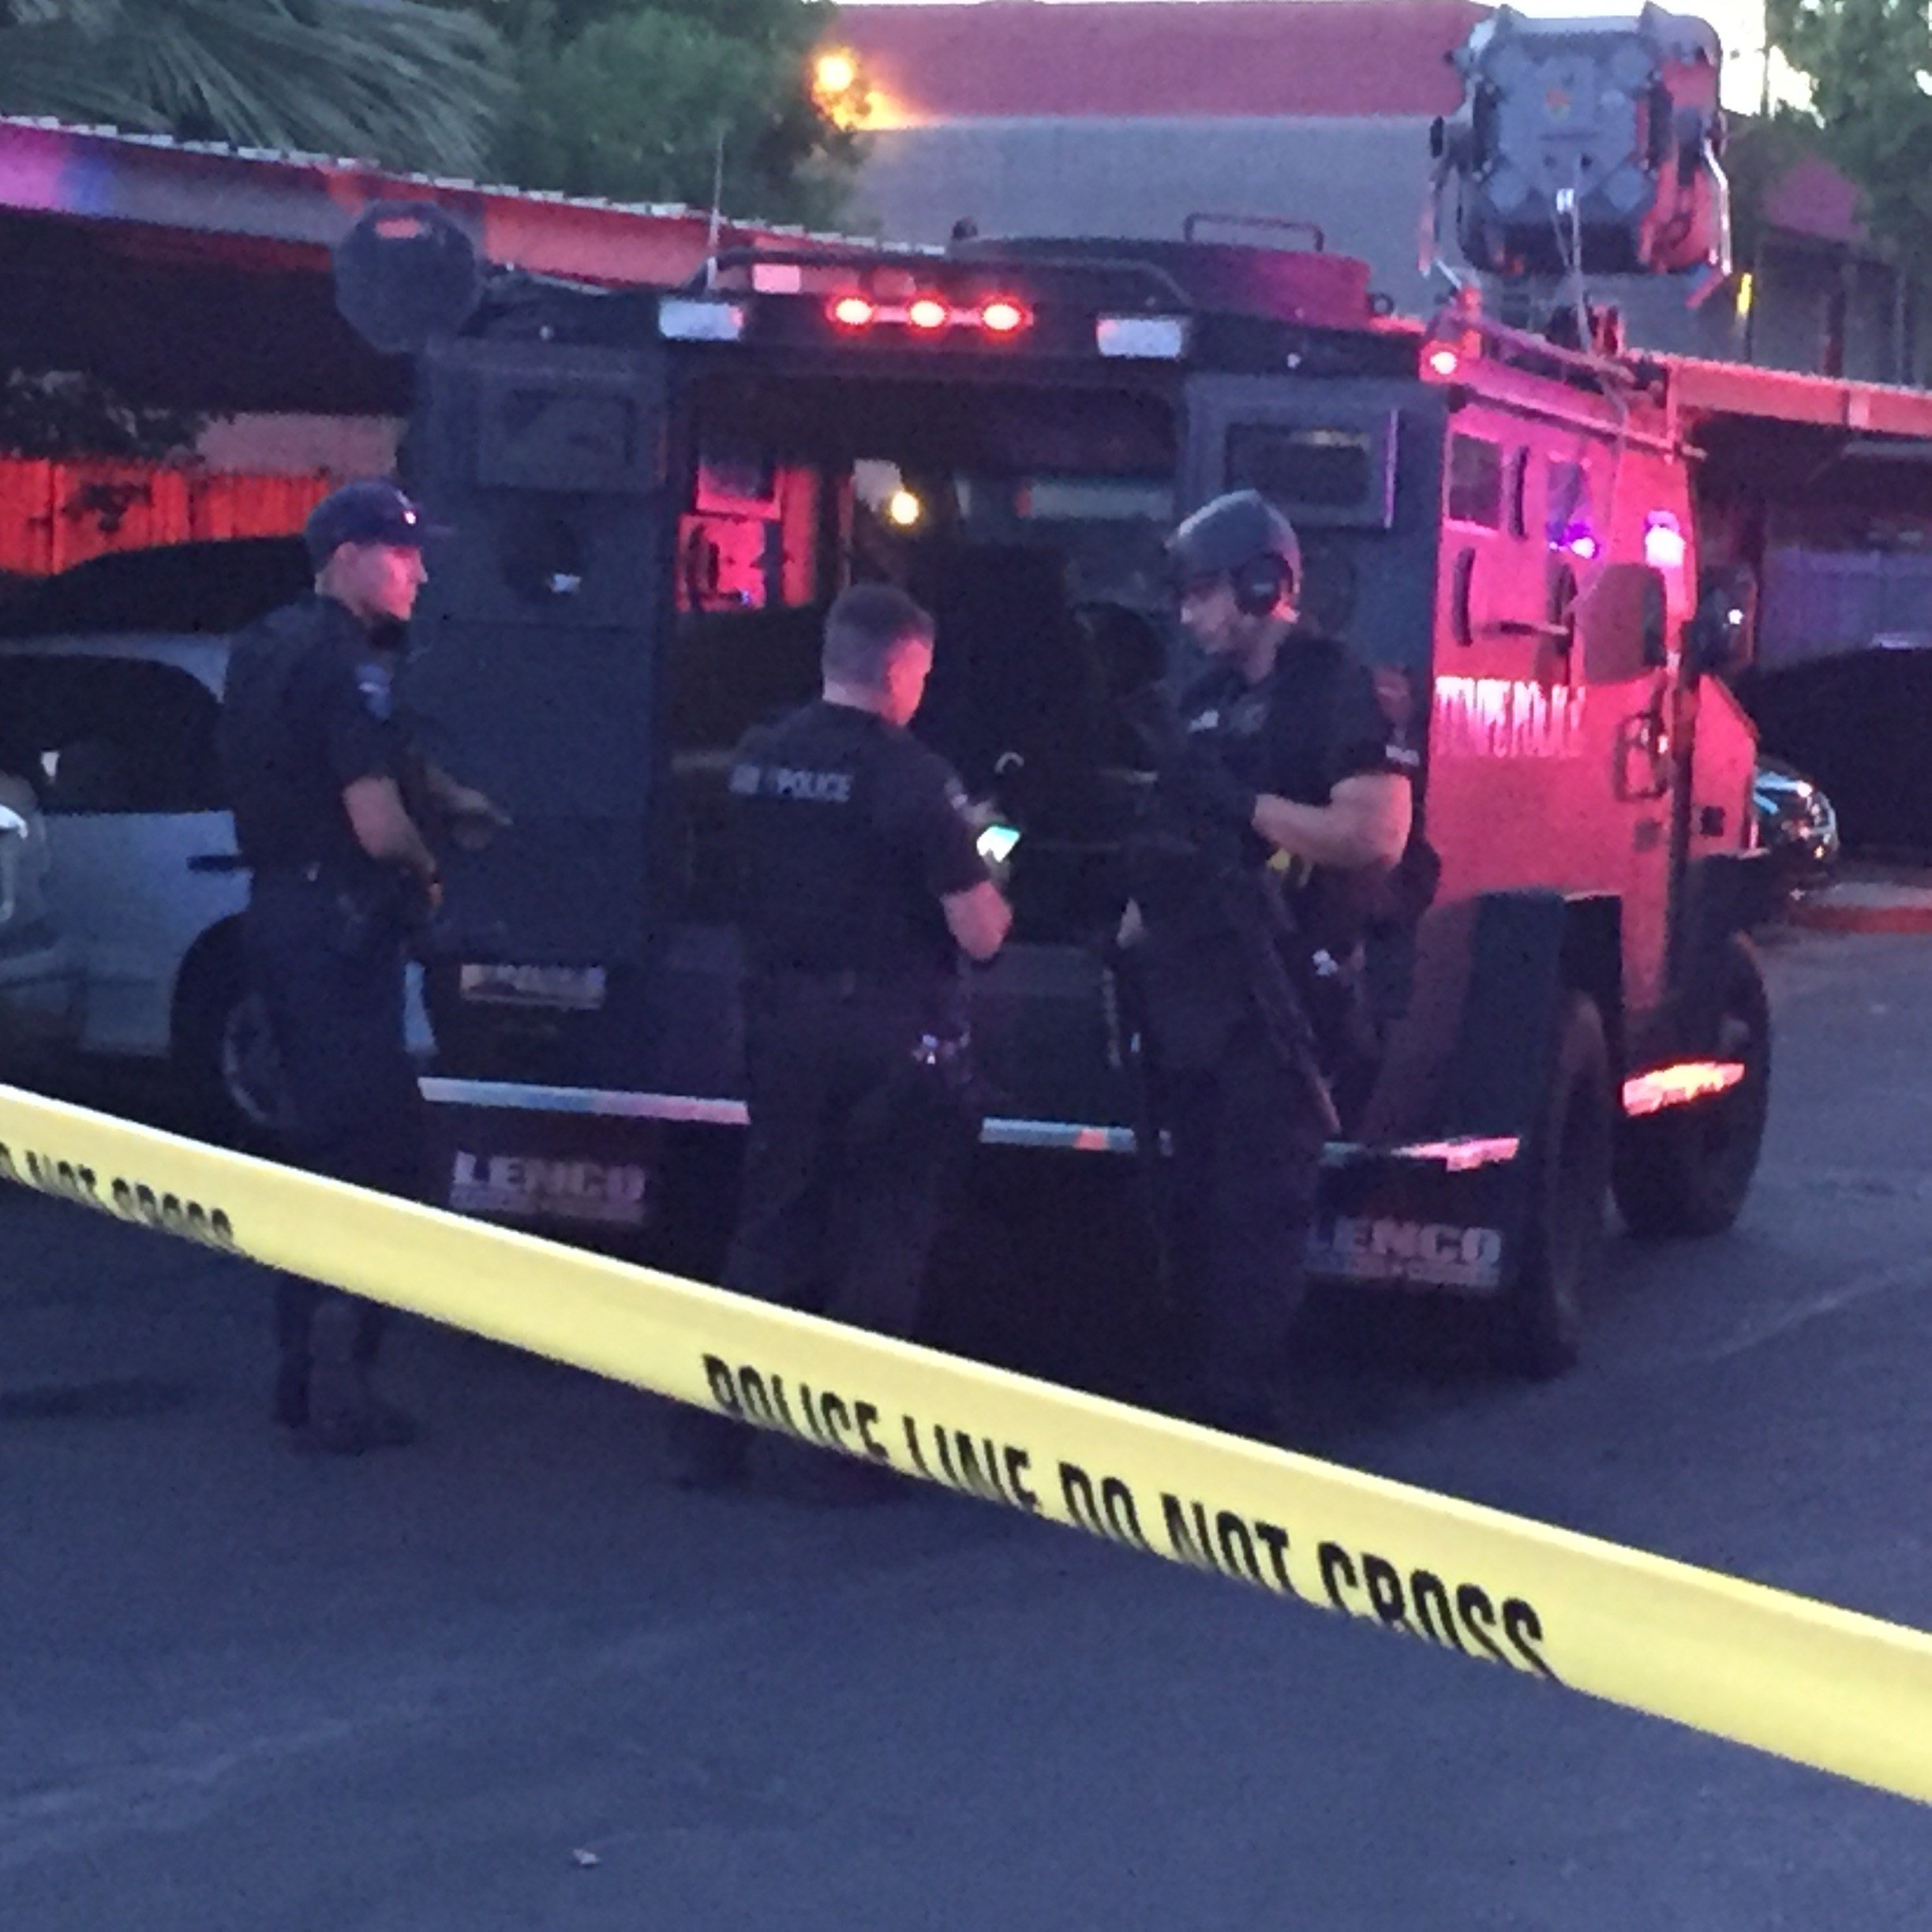 A man with a gun is refusing to come out of his Tempe apartment, police said. (Source: KPHO/KTVK)